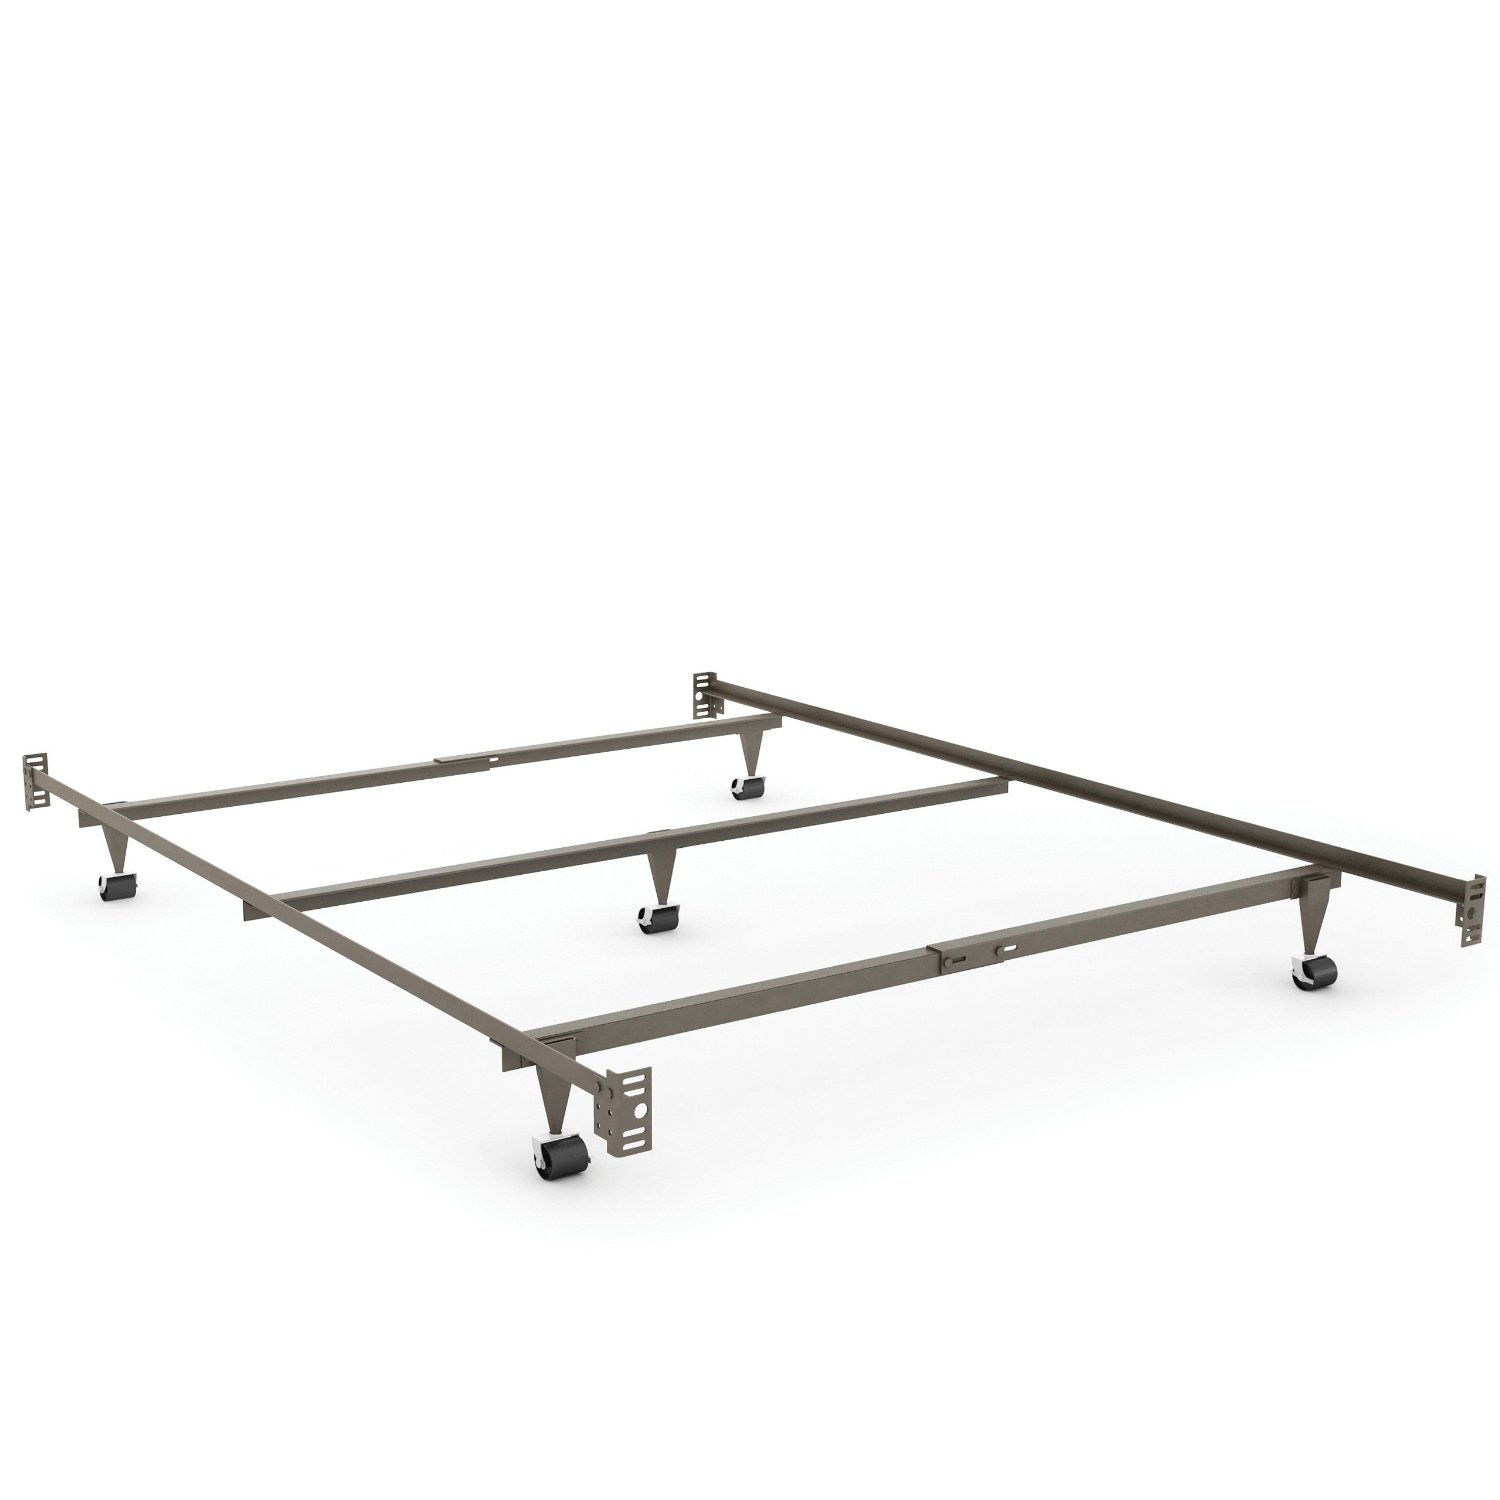 Sonax BQ-1130 Queen Size Steel Bed Rails with Head and Foot Board Attachment